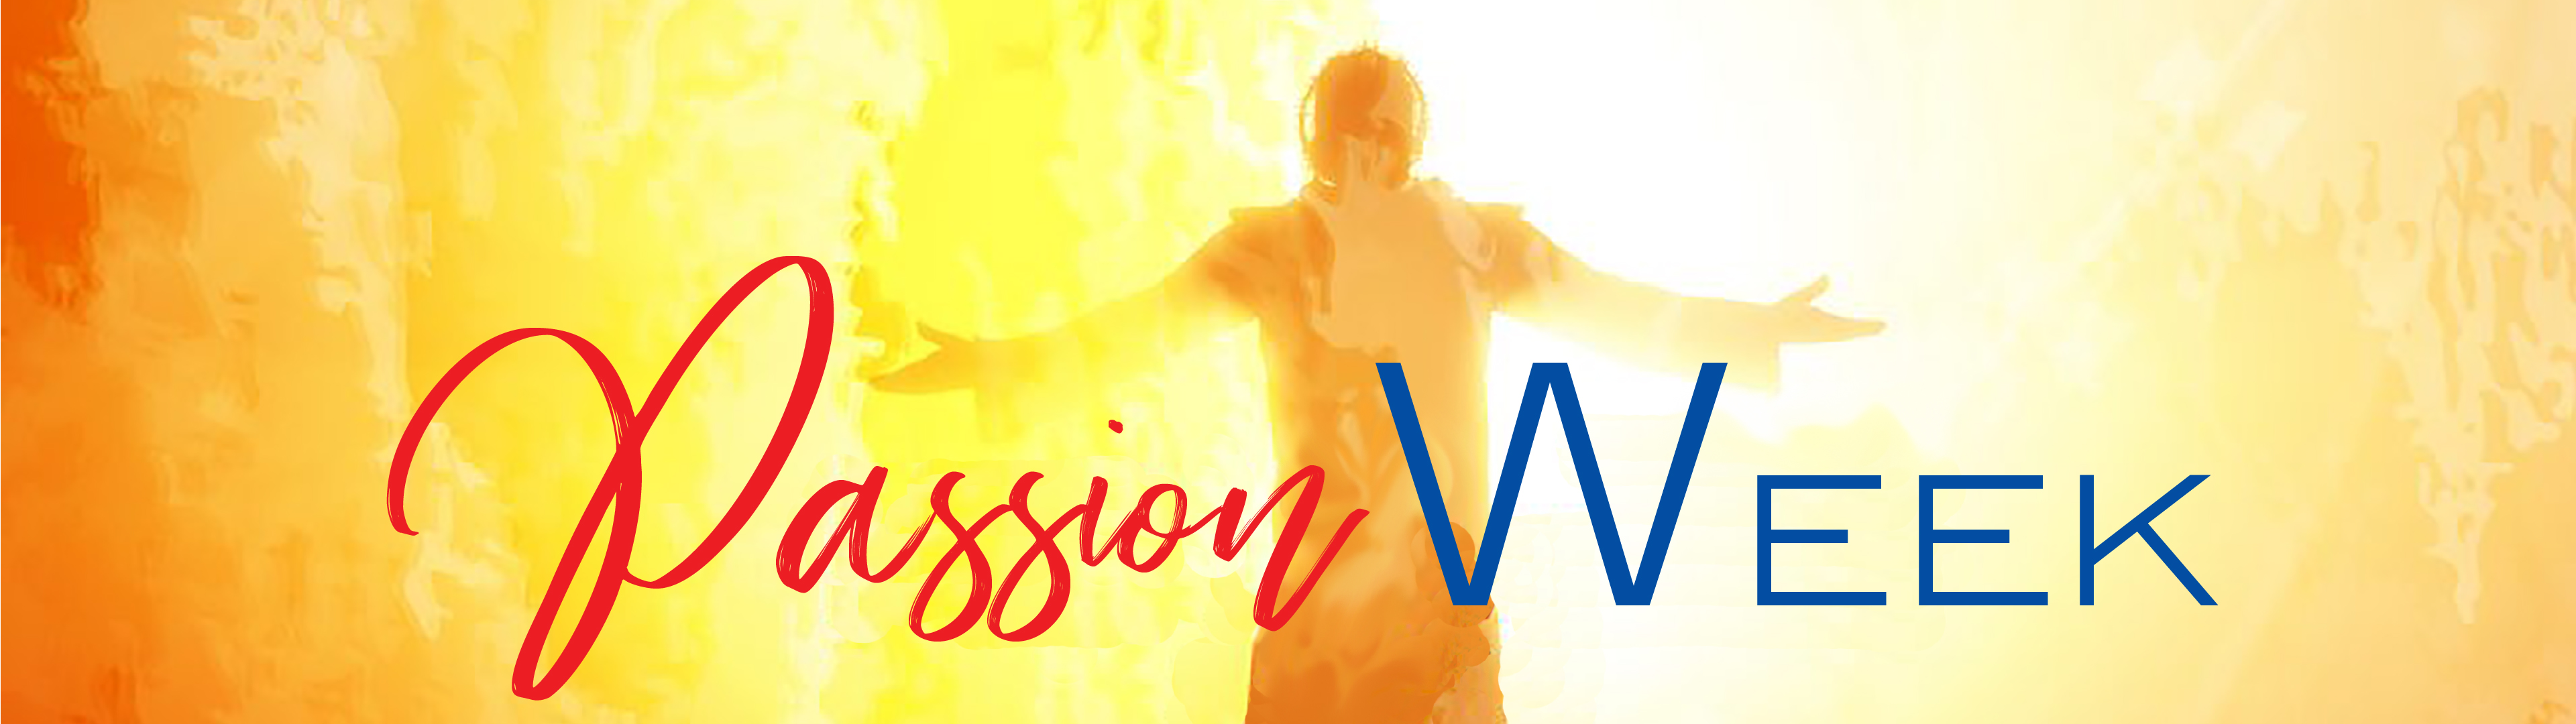 passion-week-4brd-dq2019-slim-banner